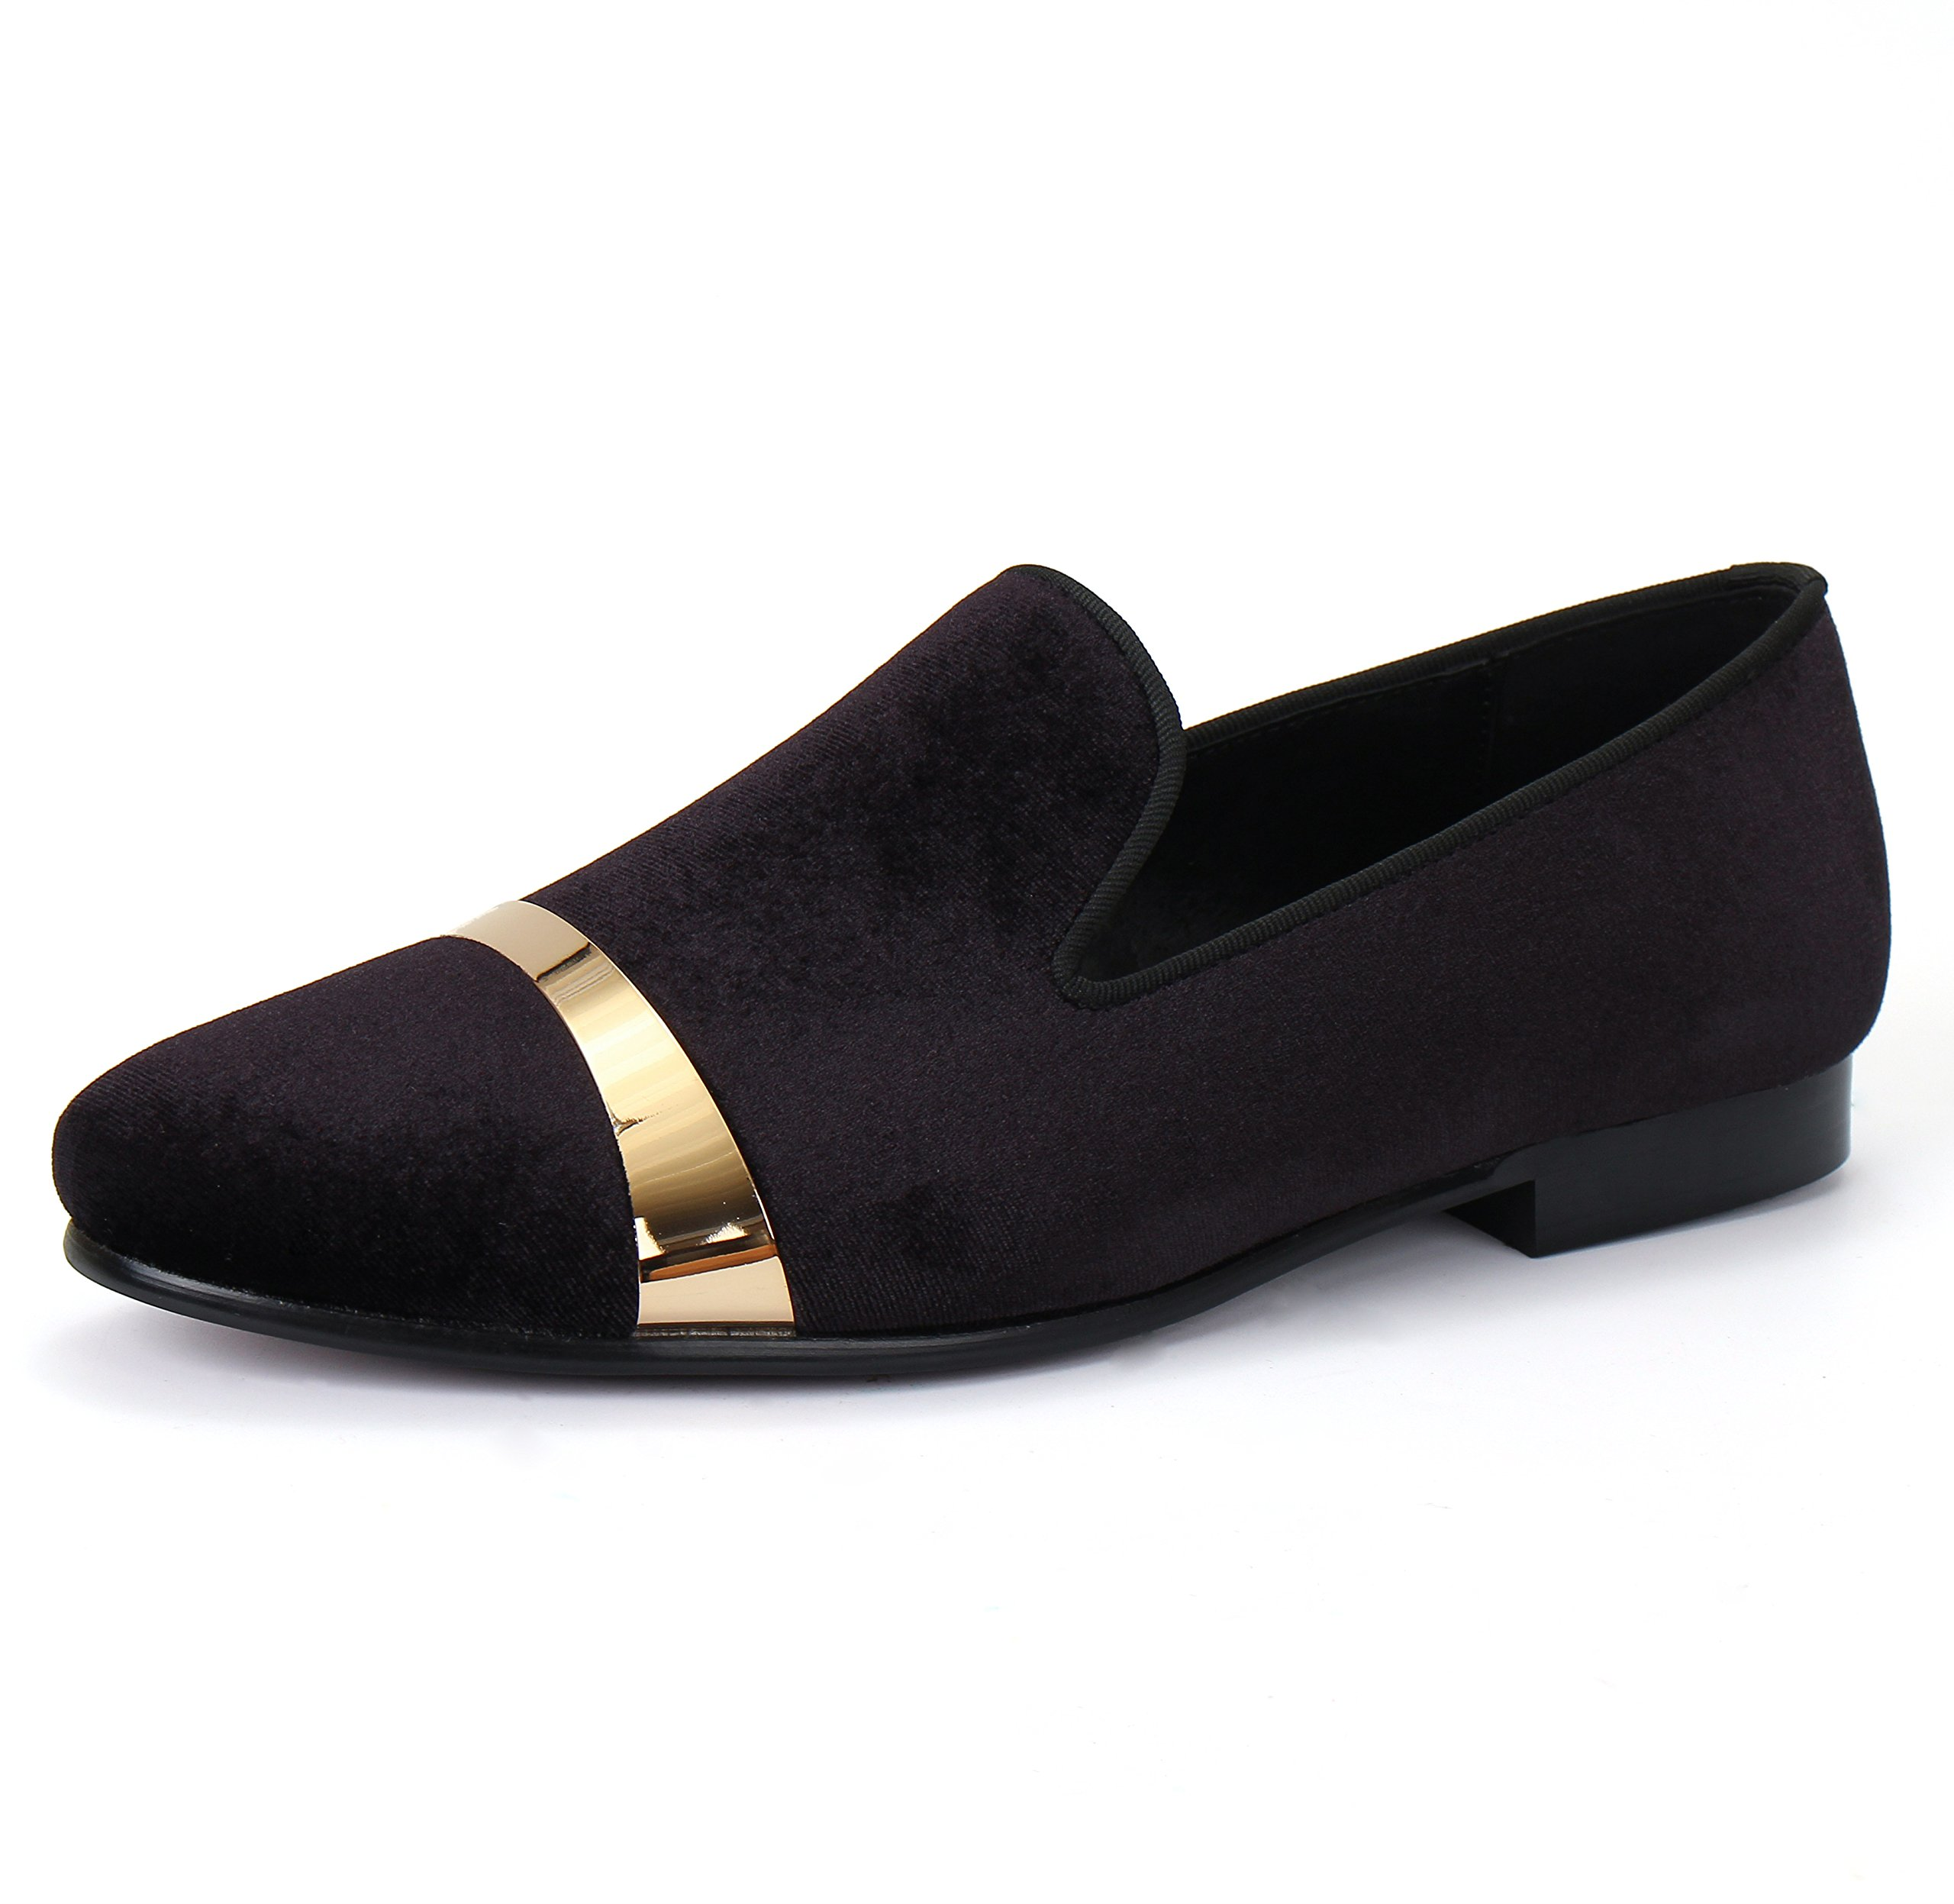 Men Velvet Loafers Handmade Flats Shoes with Gold Plate (14)